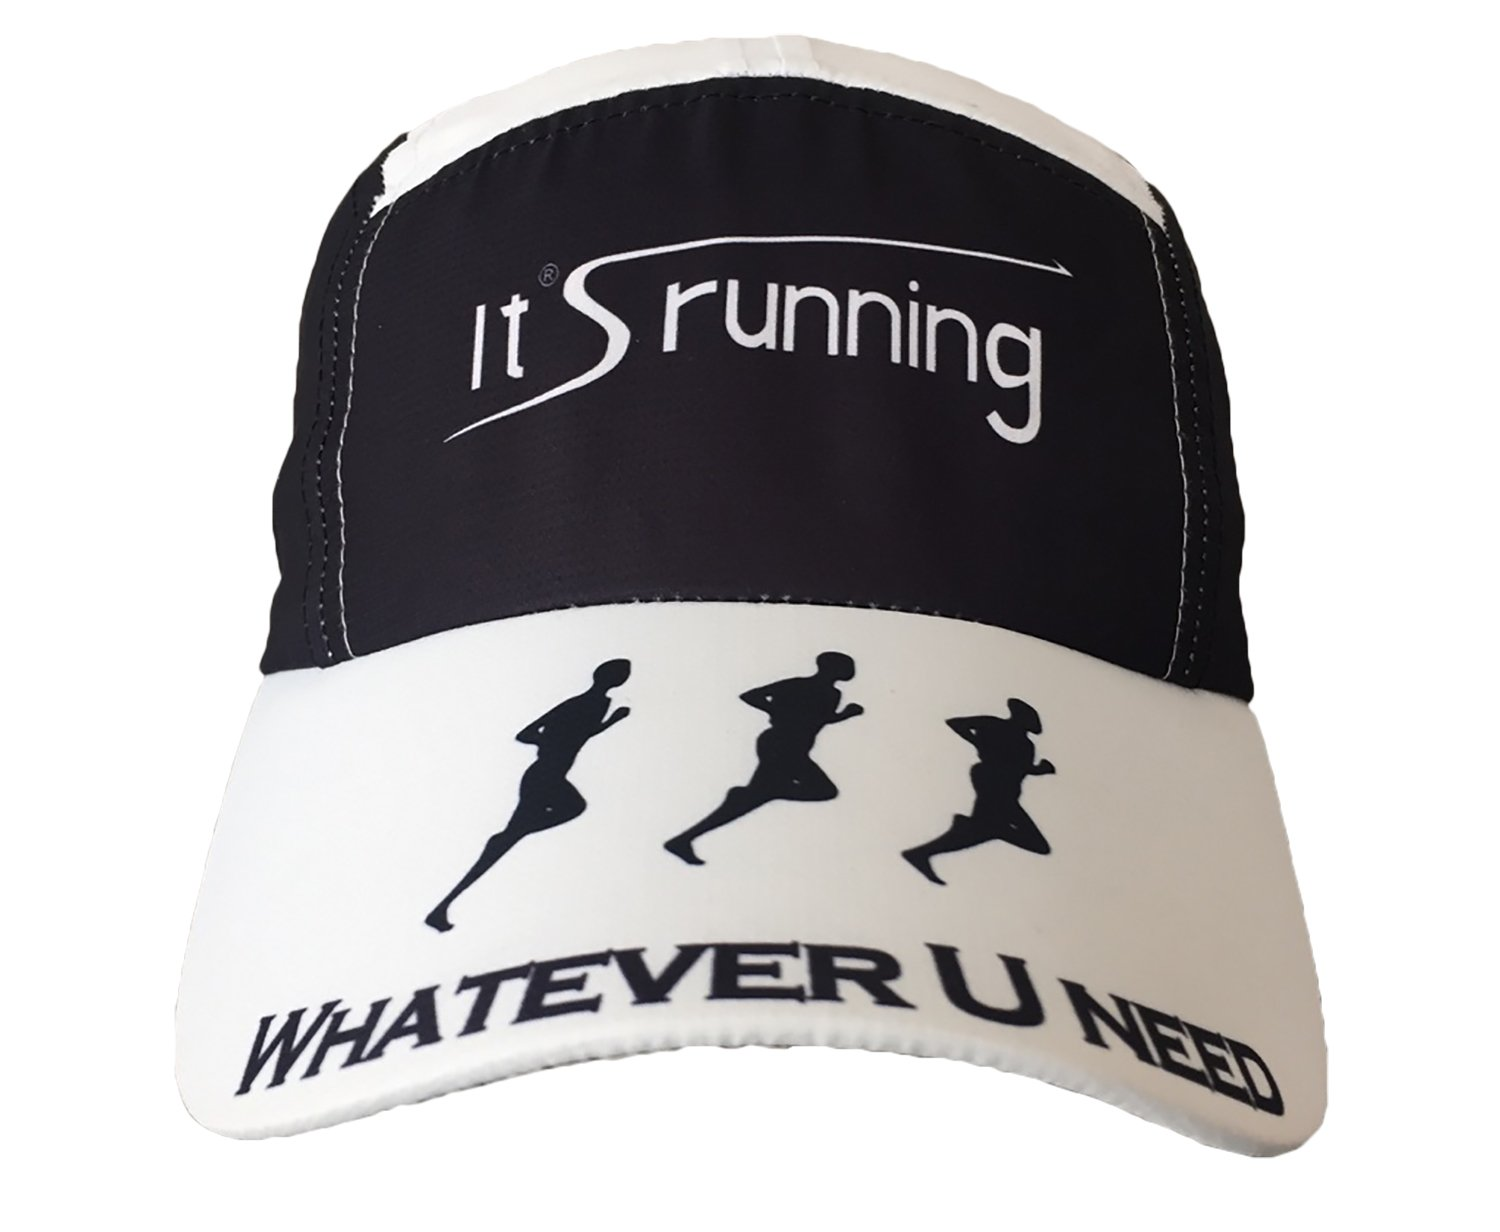 Headsweats Race Hat Special It's running Running Cap, Black/White One Size HSWRS